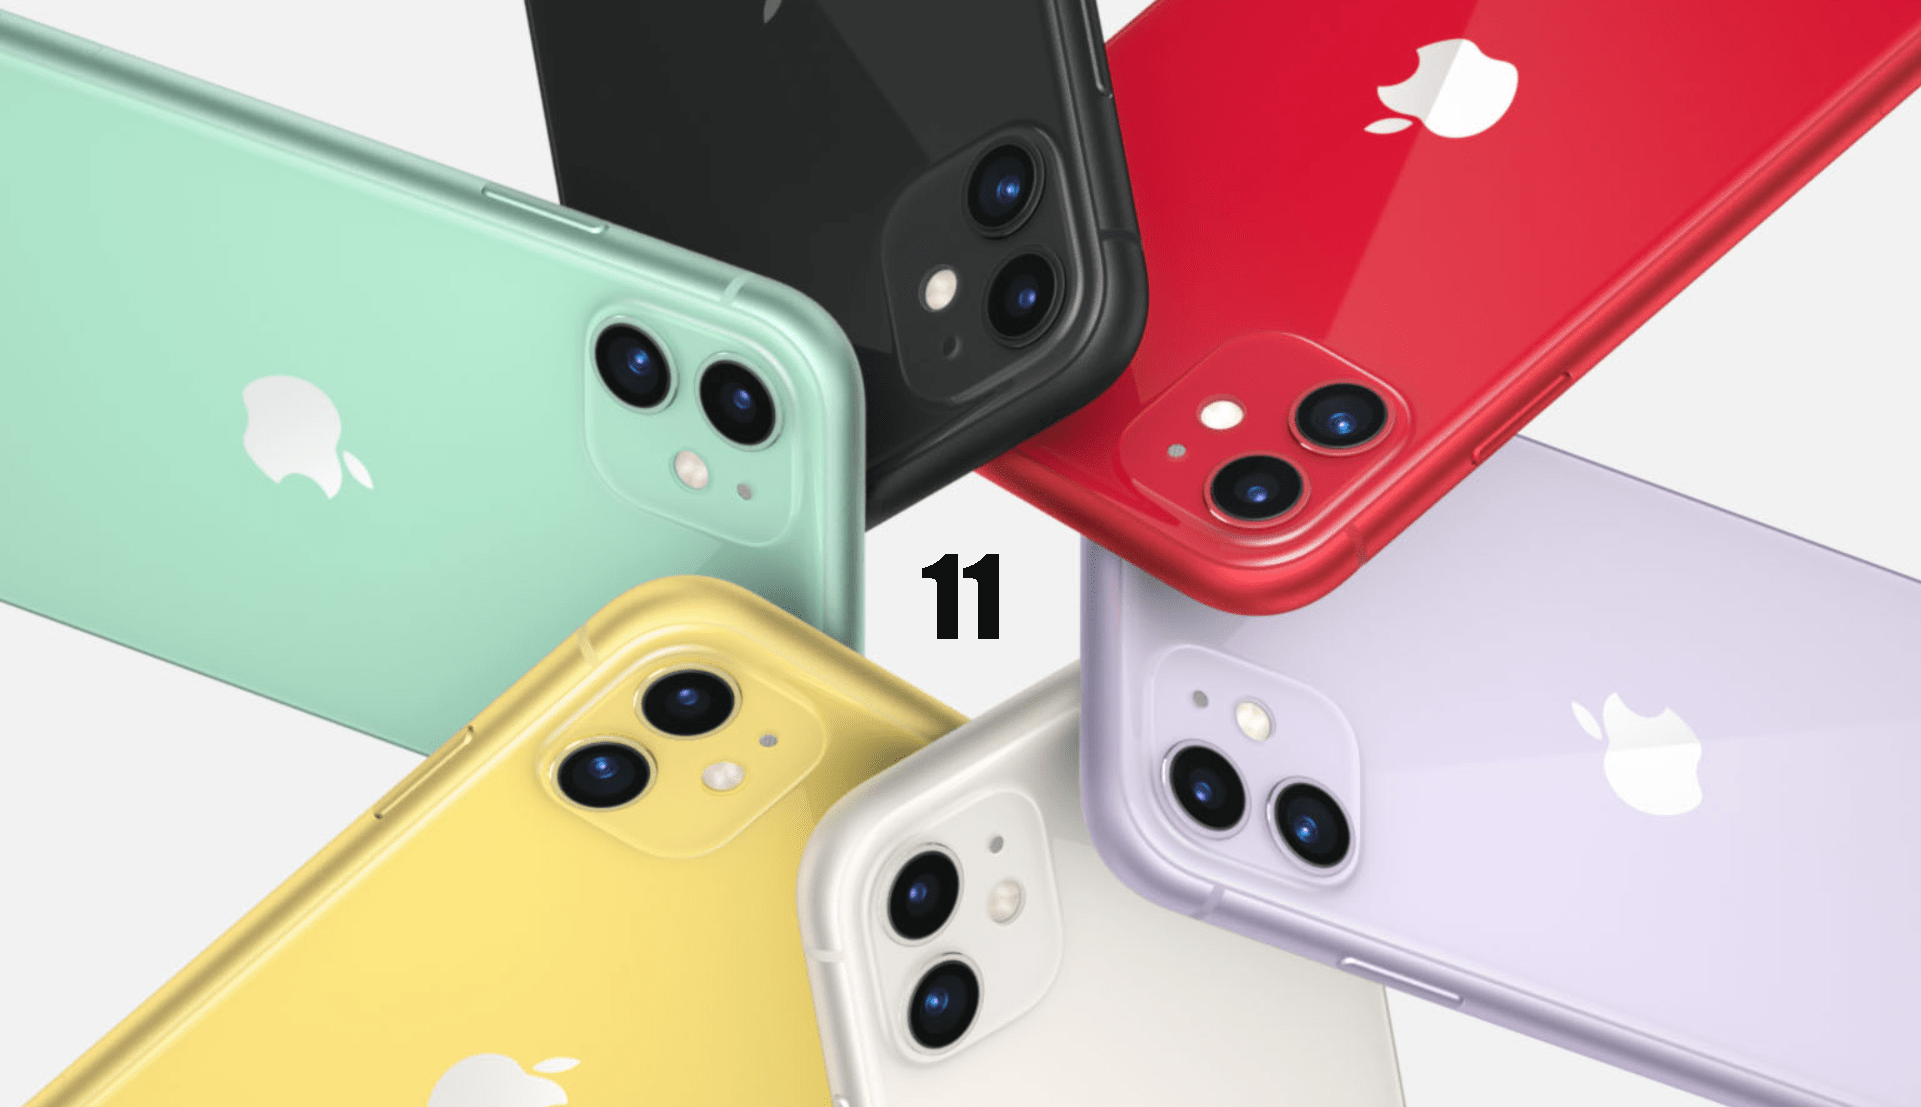 iPhone 11 - TelOneiPhone.fr